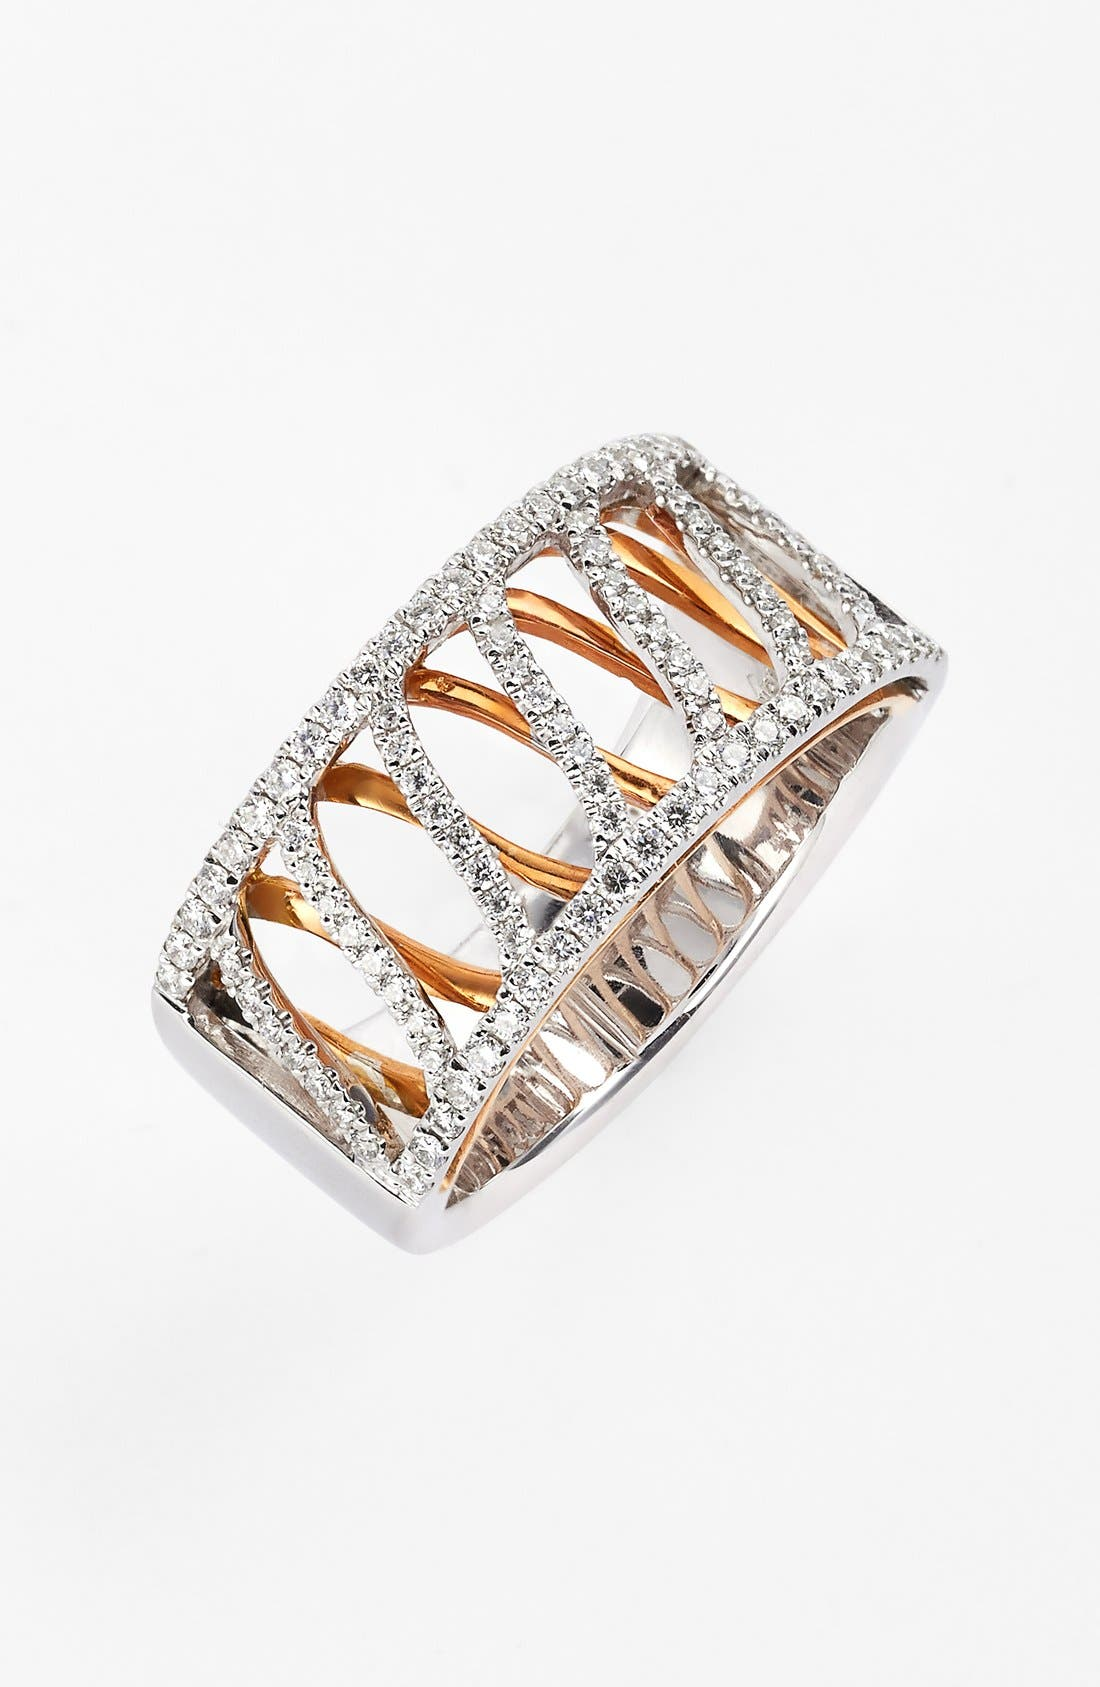 Main Image - Bony Levy Wide Two-Tone Diamond Ring (Limited Edition) (Nordstrom Exclusive)